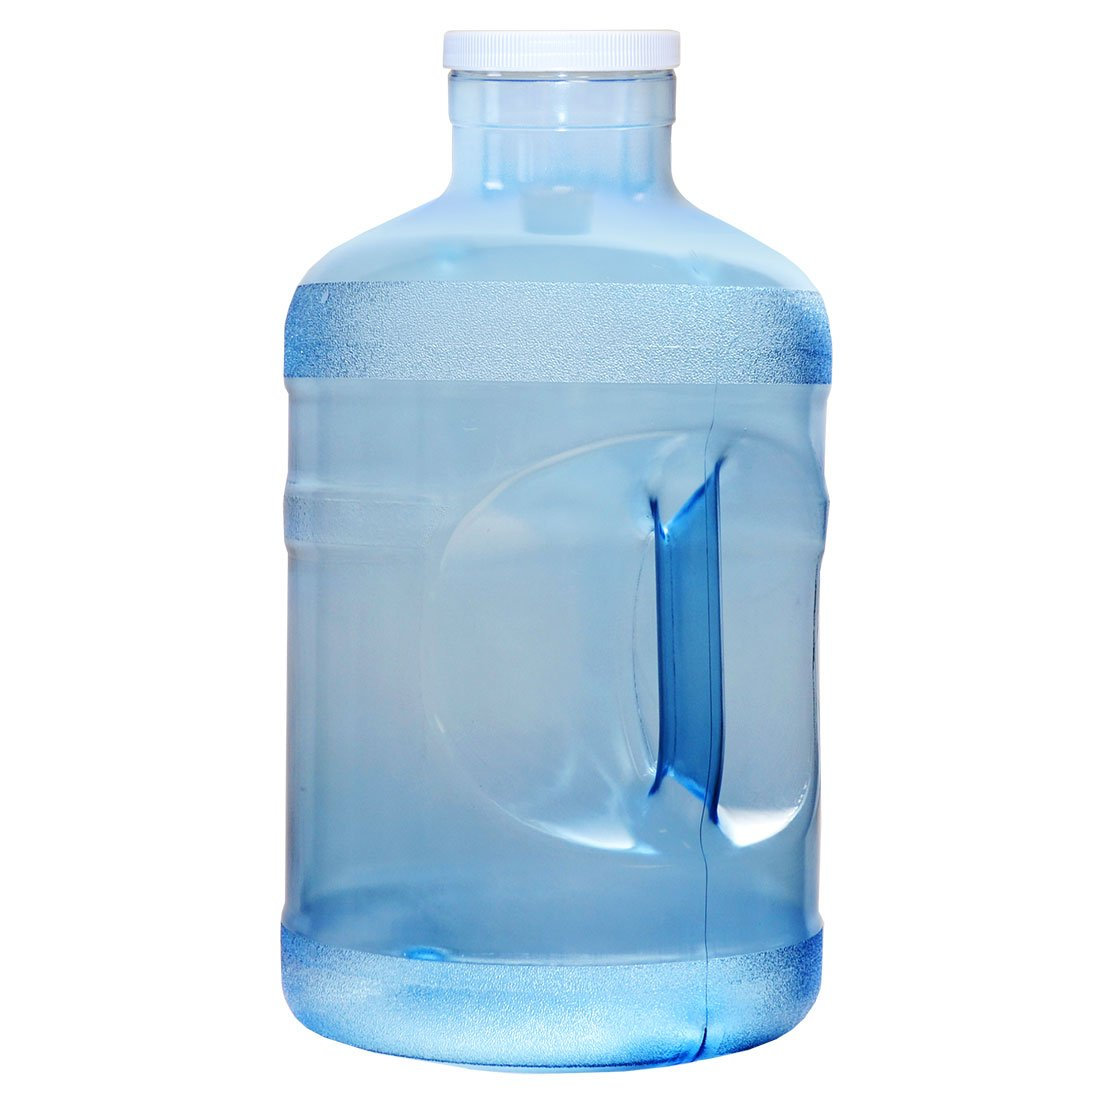 For Your Water 1 Gallon 3.7 Liter BPA Free FDA Approved Plastic Reusable Sport Water Bottle Container Jug with Handle and with 48MM Screw Cap 6.5 x 11. 5 - Blue - Made in the USA by For Your Water BT110BANB